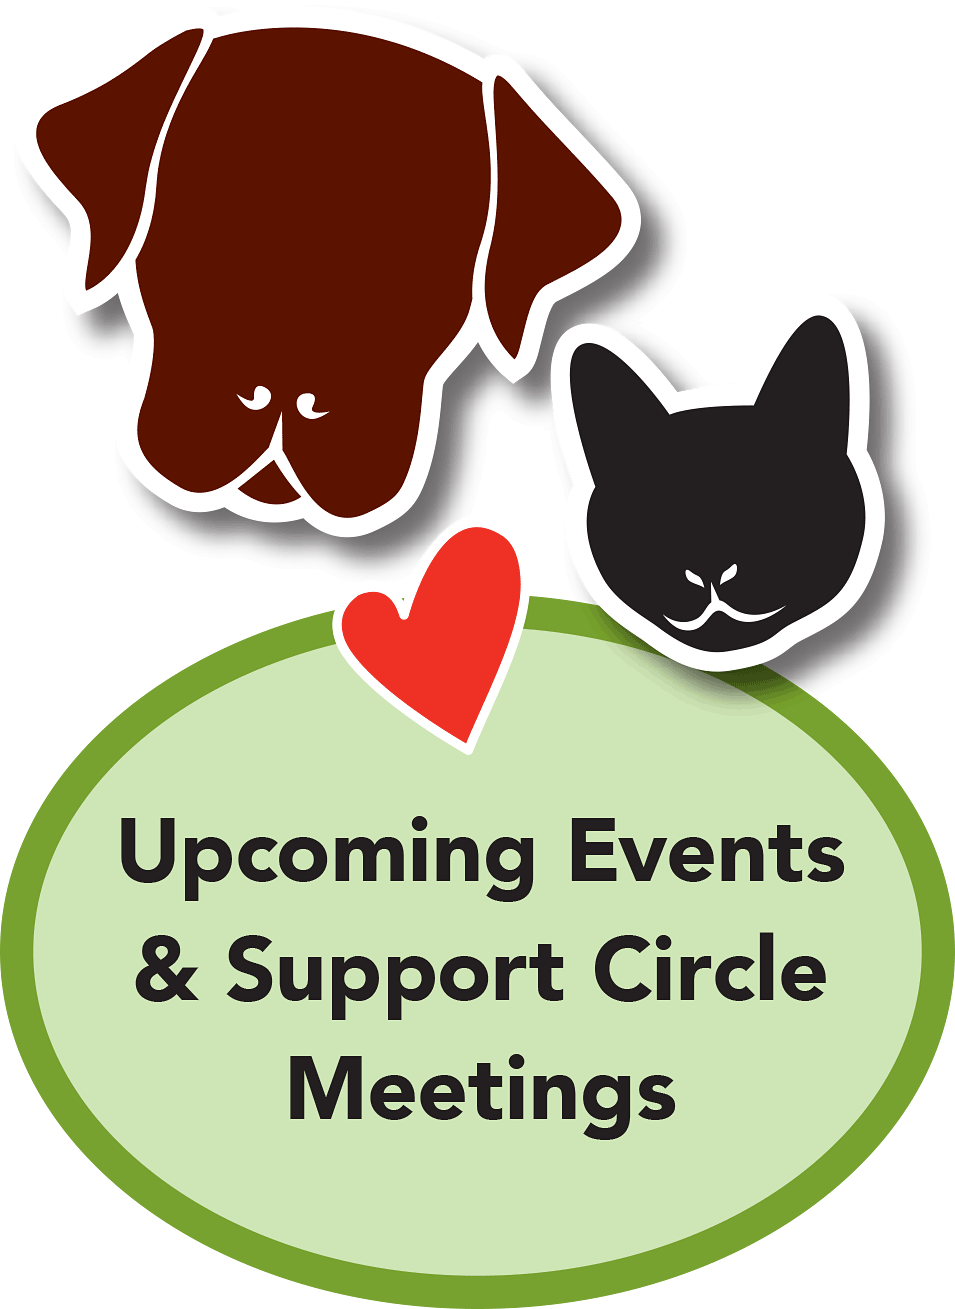 Events and Support Circle Meetings